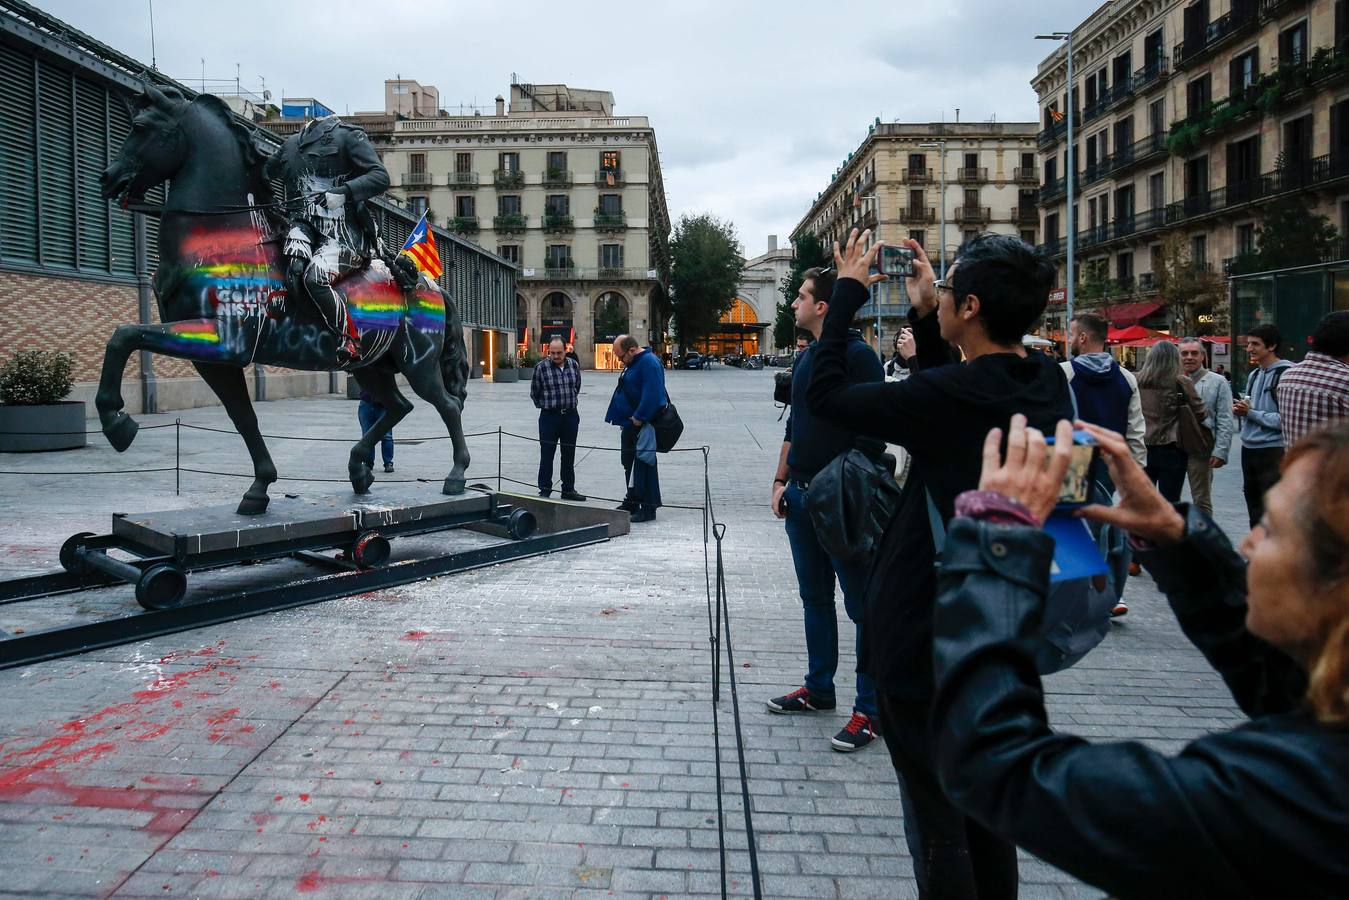 Tumban la estatua de Franco decapitado exhibida en el Born